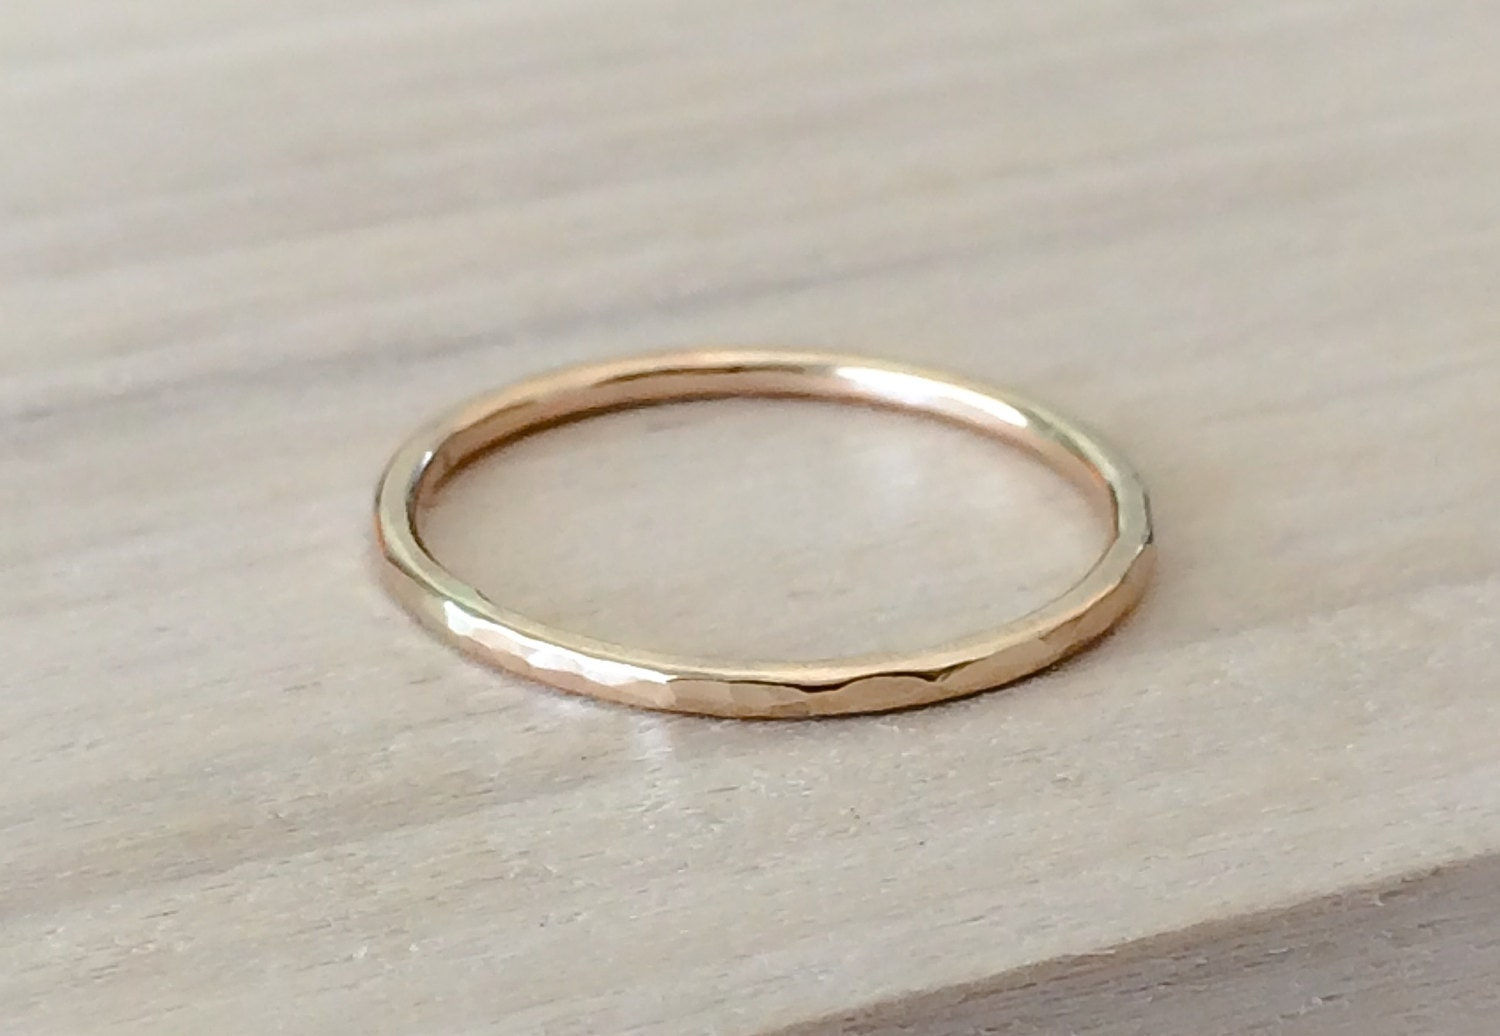 gold ring 14k gold filled stacking ring minimalist jewelry. Black Bedroom Furniture Sets. Home Design Ideas